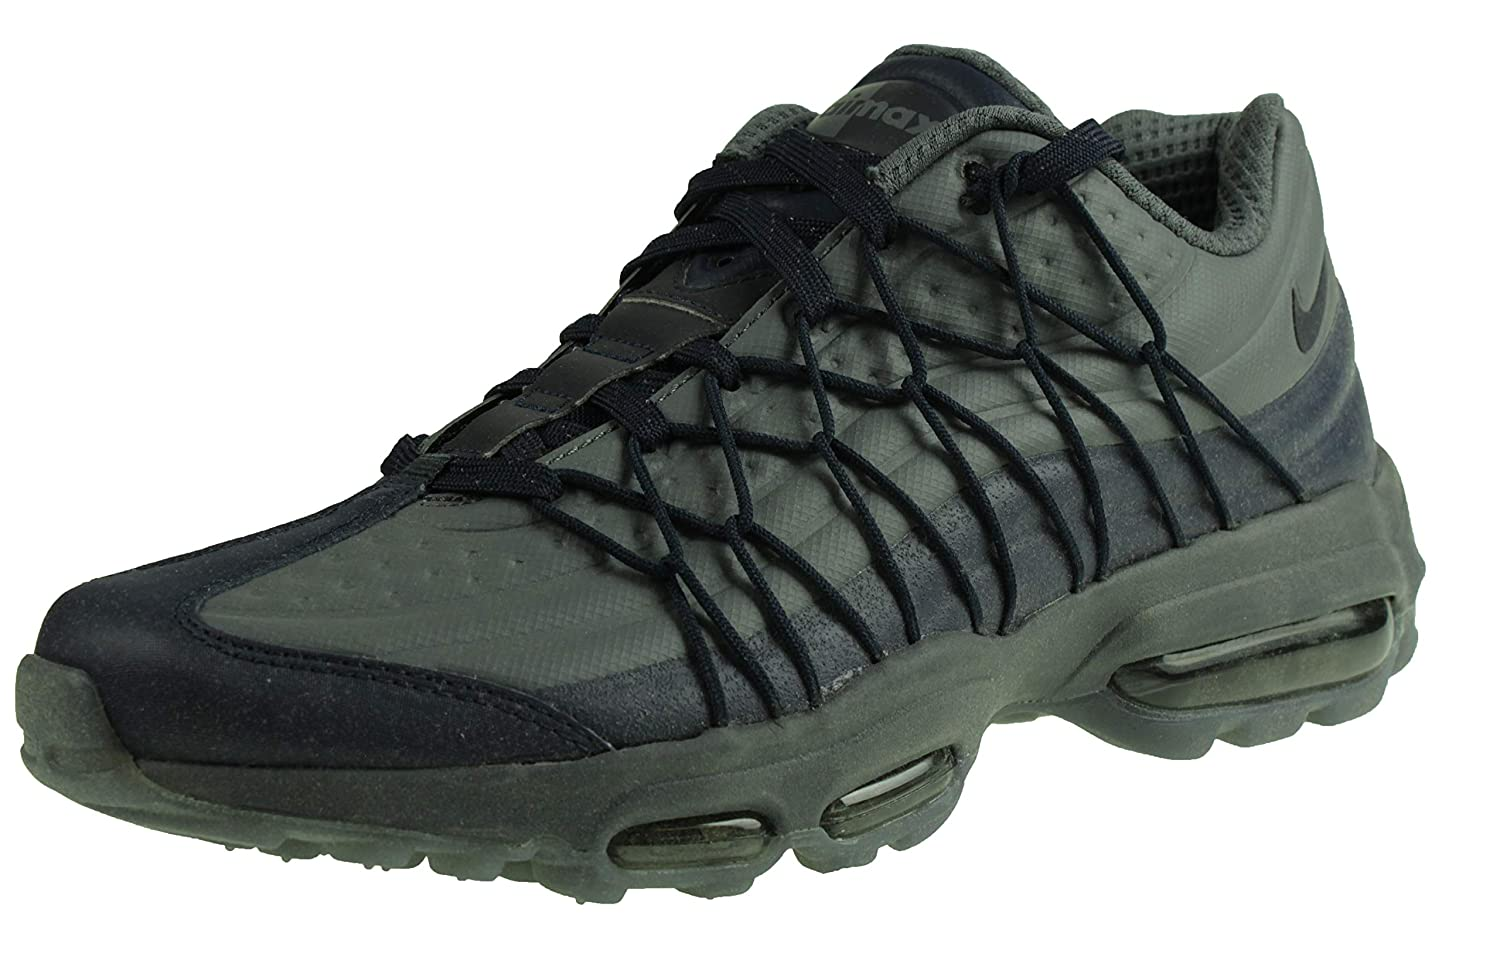 online store 97c44 f6128 Mens Air Max 95 Ultra SE: Amazon.co.uk: Shoes & Bags